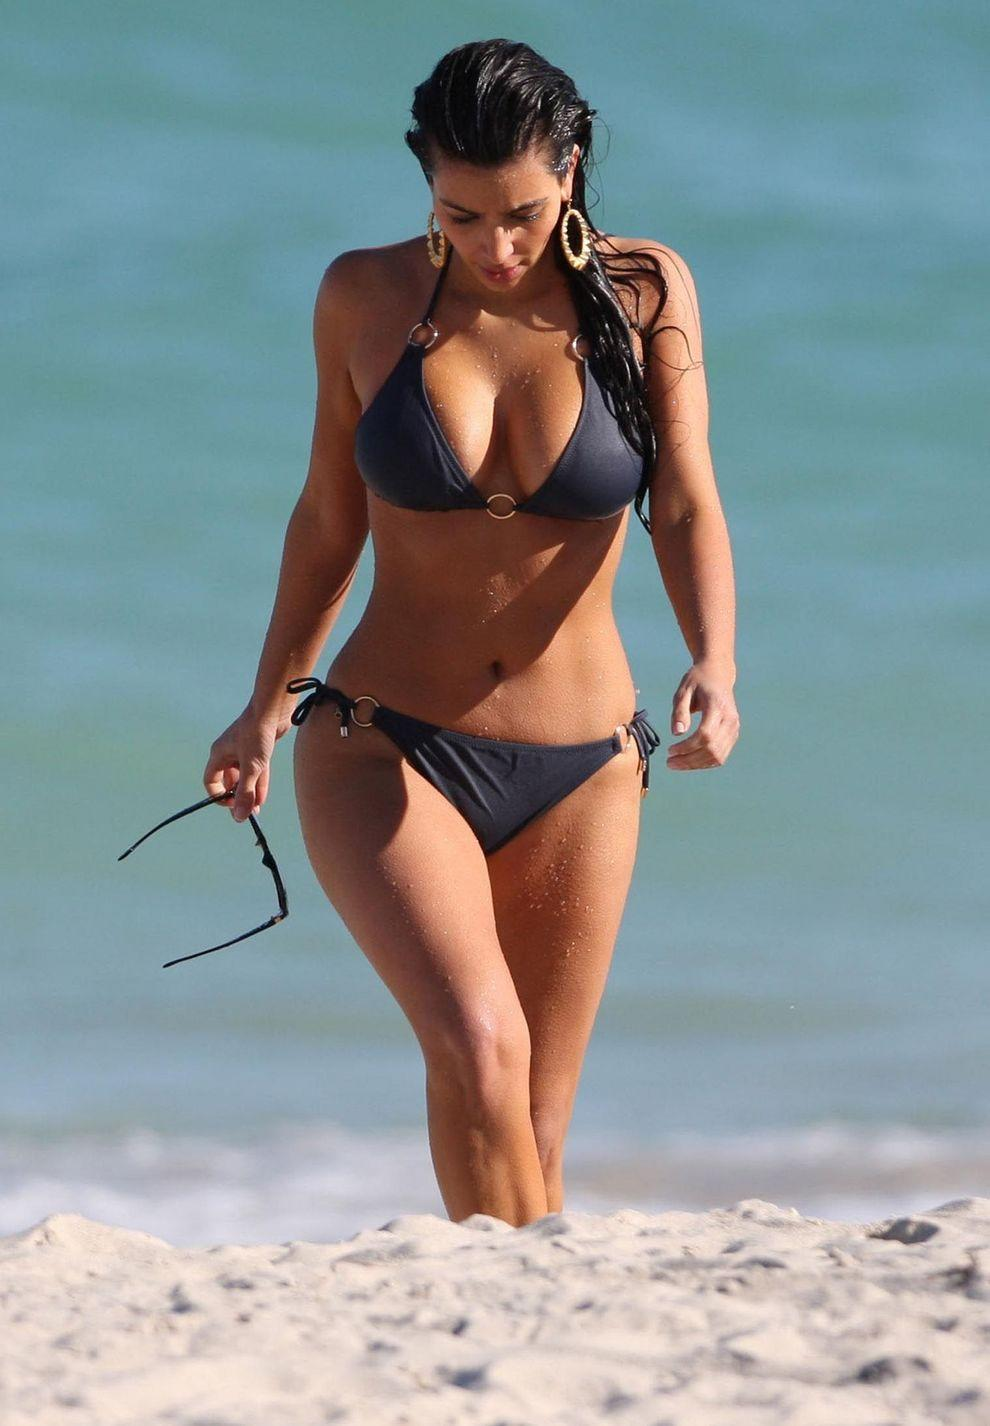 kim kardashian bikini photo gallery the edge